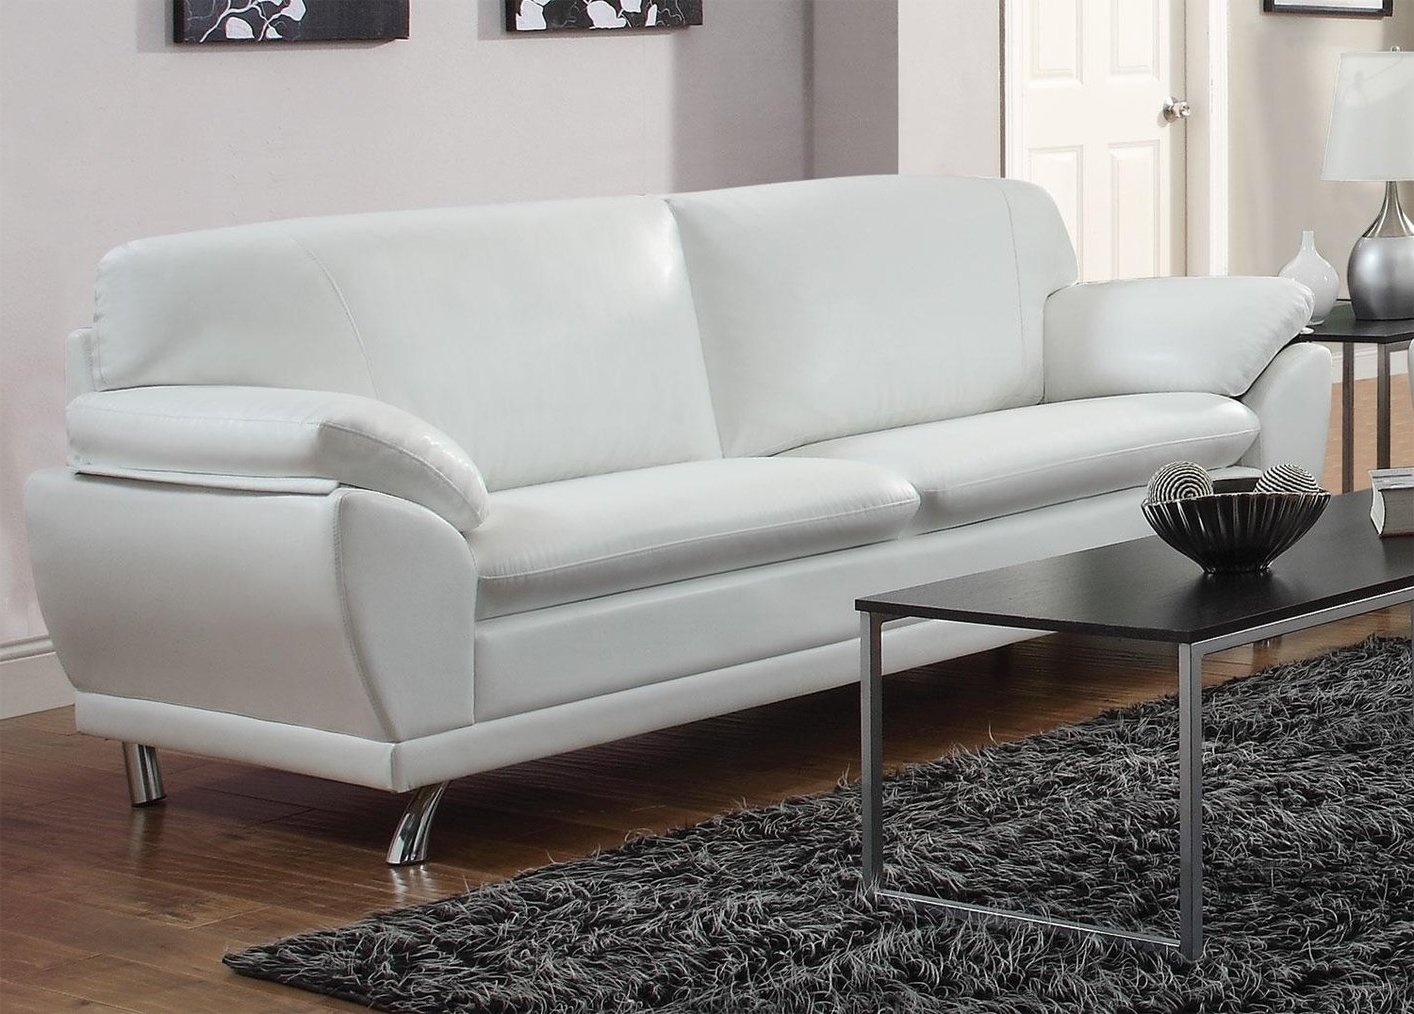 Well Liked How To Keep Your White Leather Sofa Clean – Pickndecor Within White Leather Sofas (View 2 of 20)